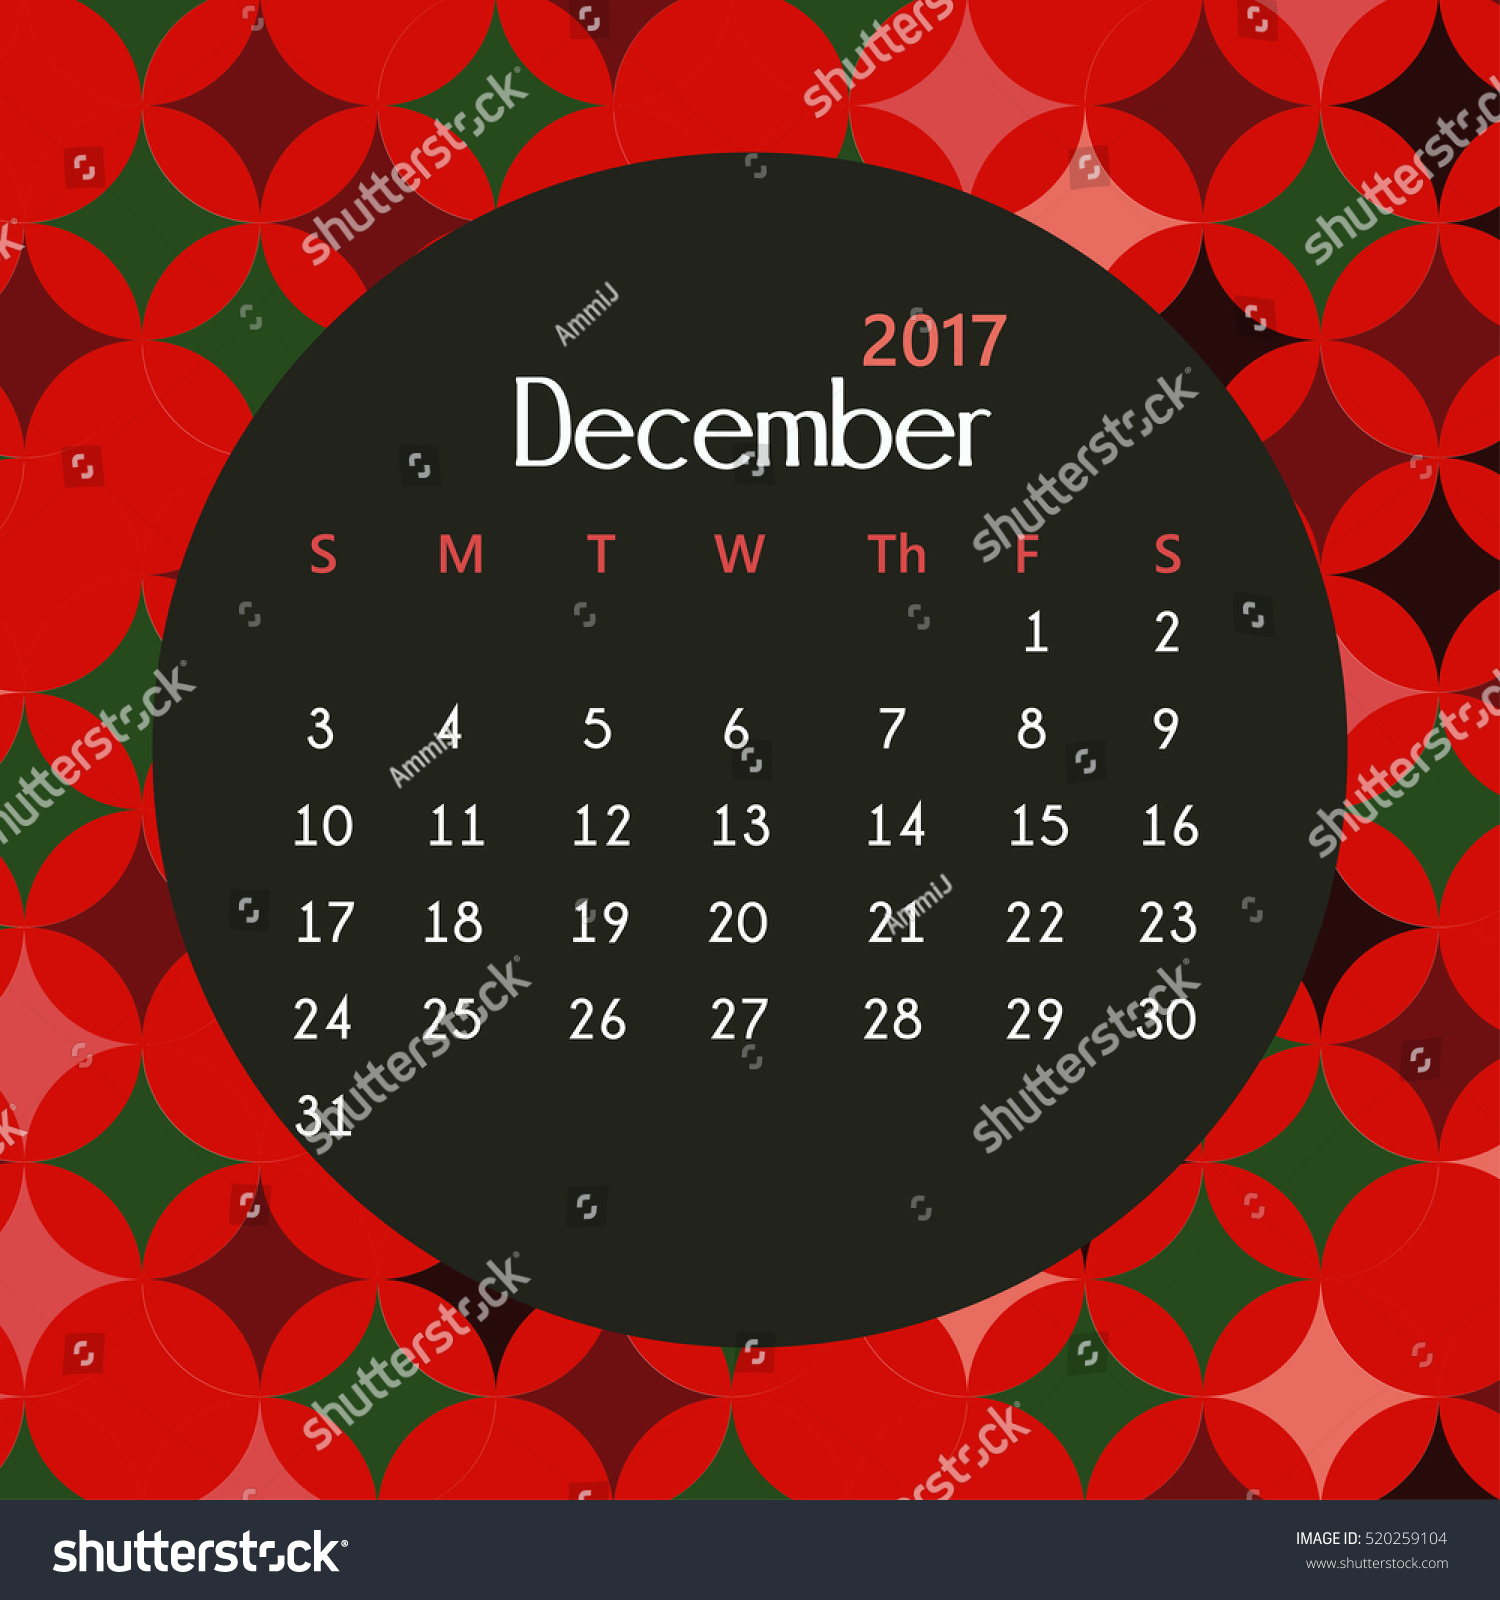 2017 December Calendar Design Geometric Background Stock ...